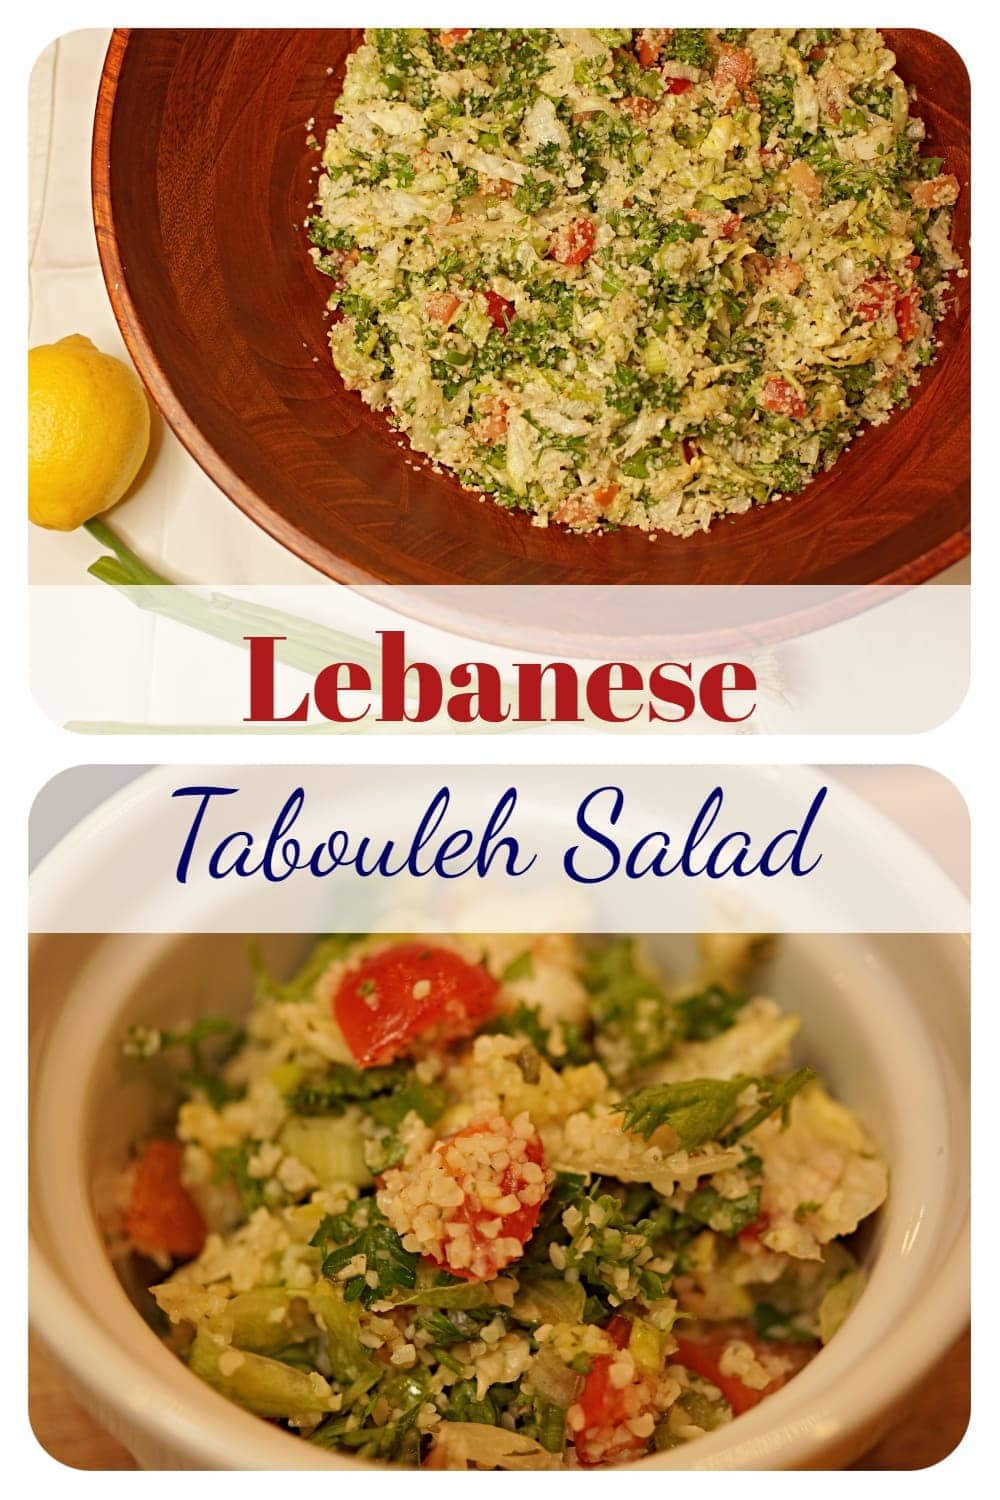 Lebanese tabbouleh is a fresh Mediterranean salad made with parsley, tomatoes, cracked wheat and an amazing lemon dressing. -APinchOfAdventure